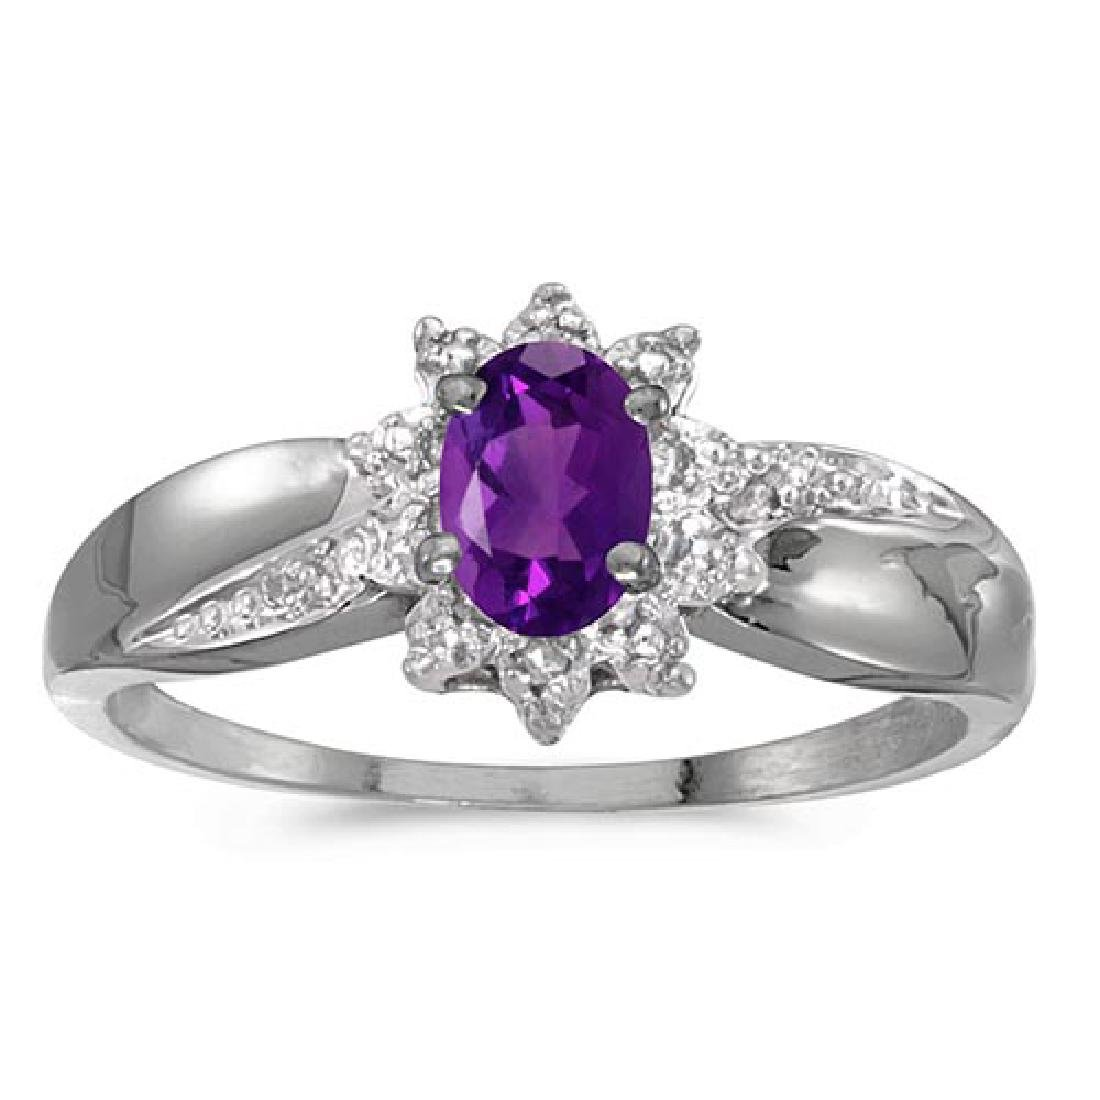 Certified 10k White Gold Oval Amethyst And Diamond Ring